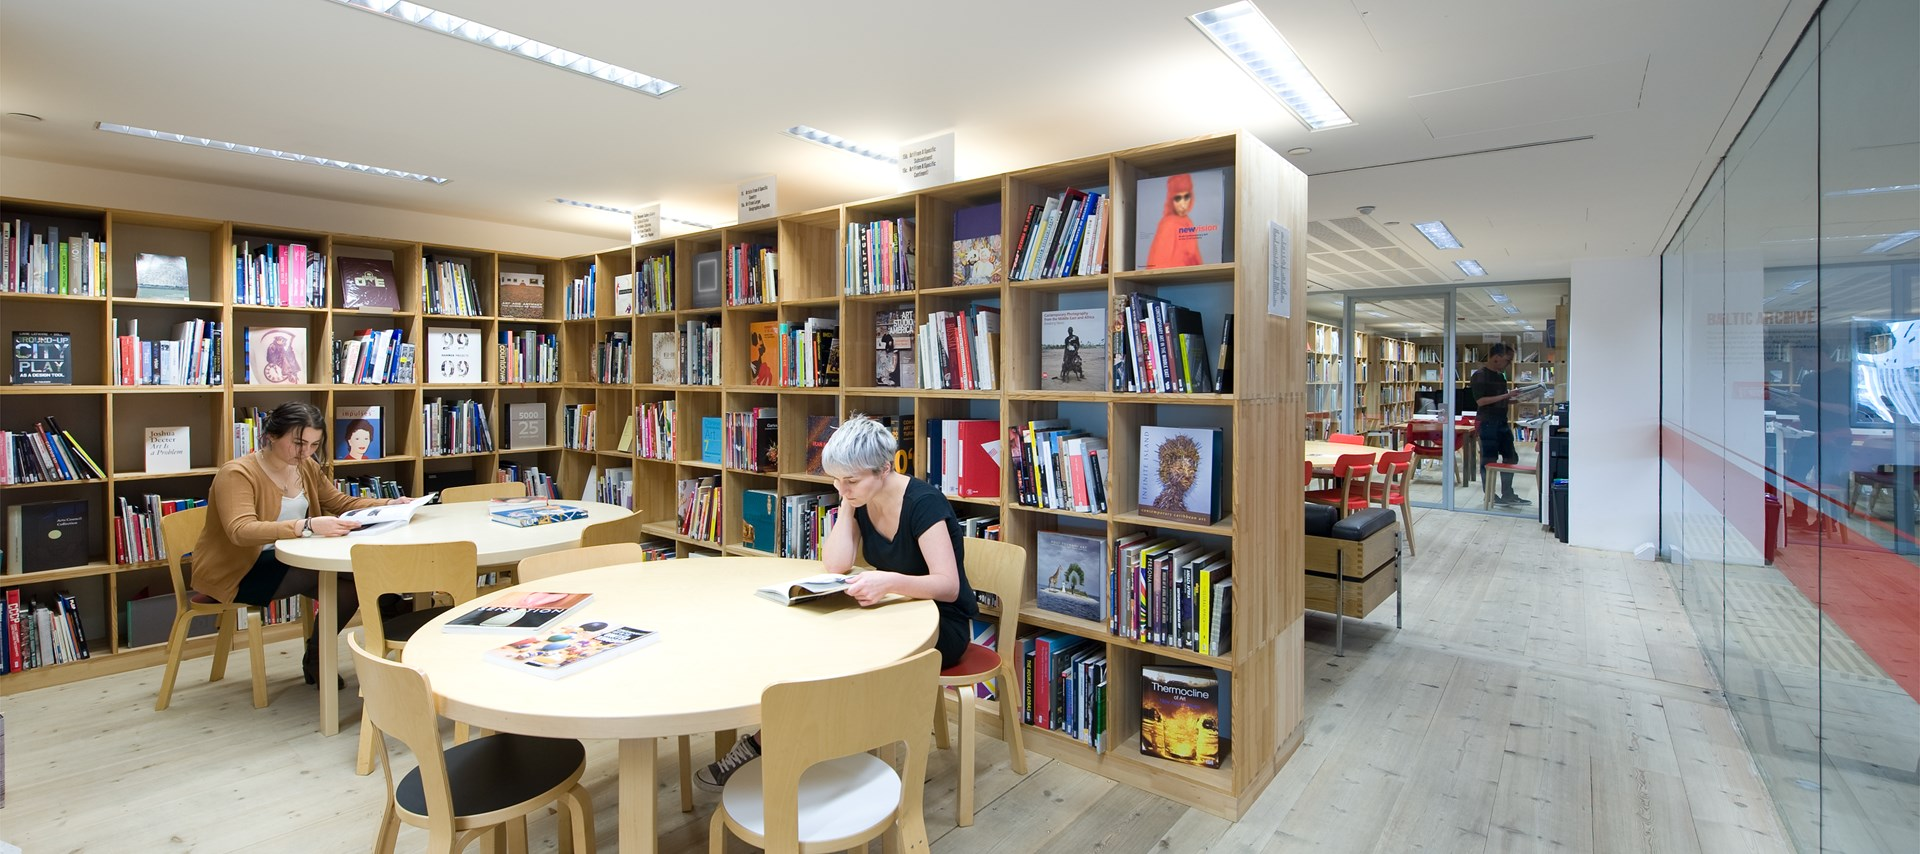 BALTIC Library: July 2015 by Colin Davison